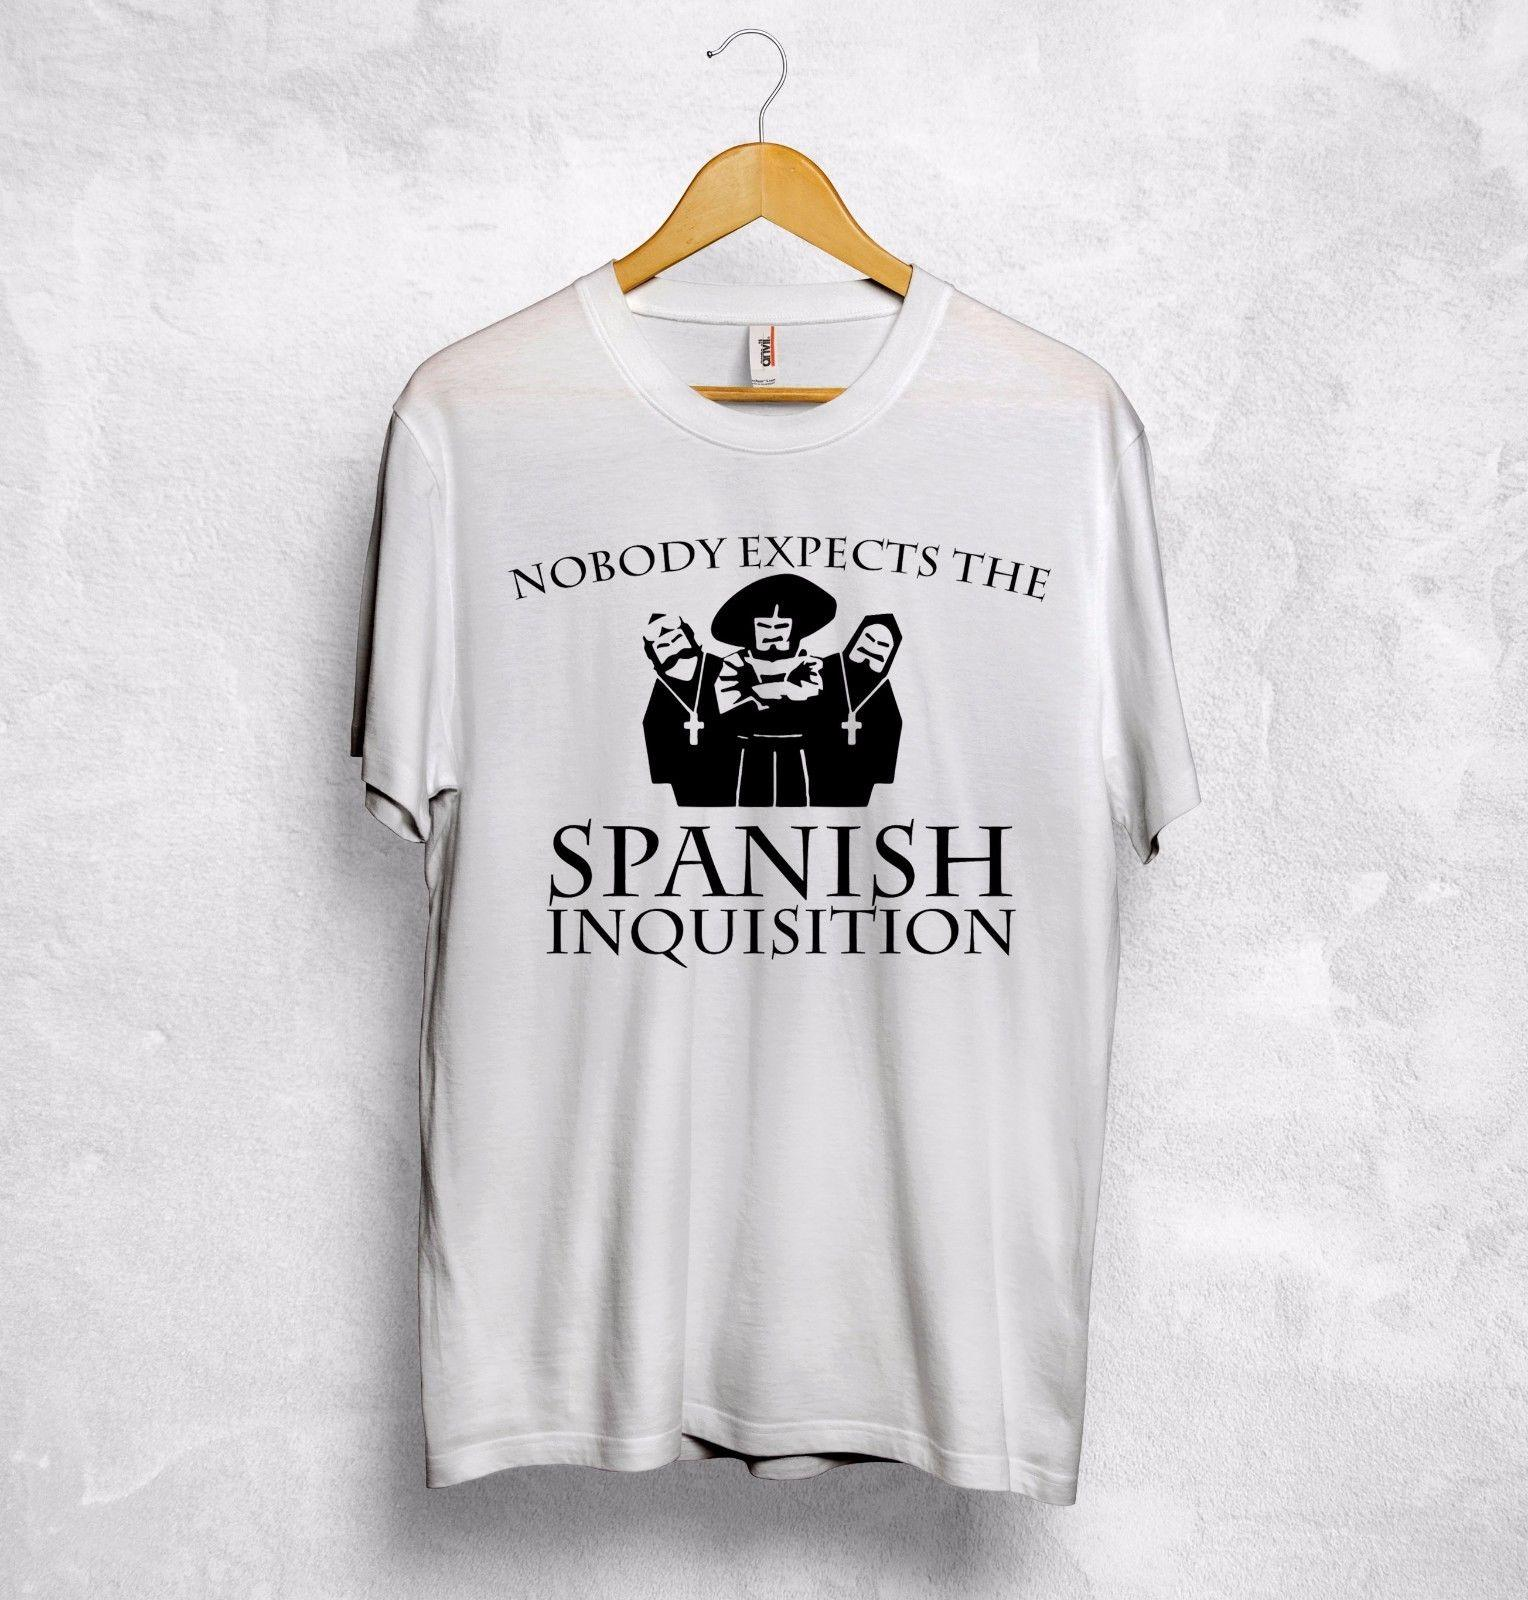 586c5ba9 Tops & Shirts Nobody Expects The Spanish Inquisition T Shirt Top Monty  Python's Flying Circus Men's Clothing